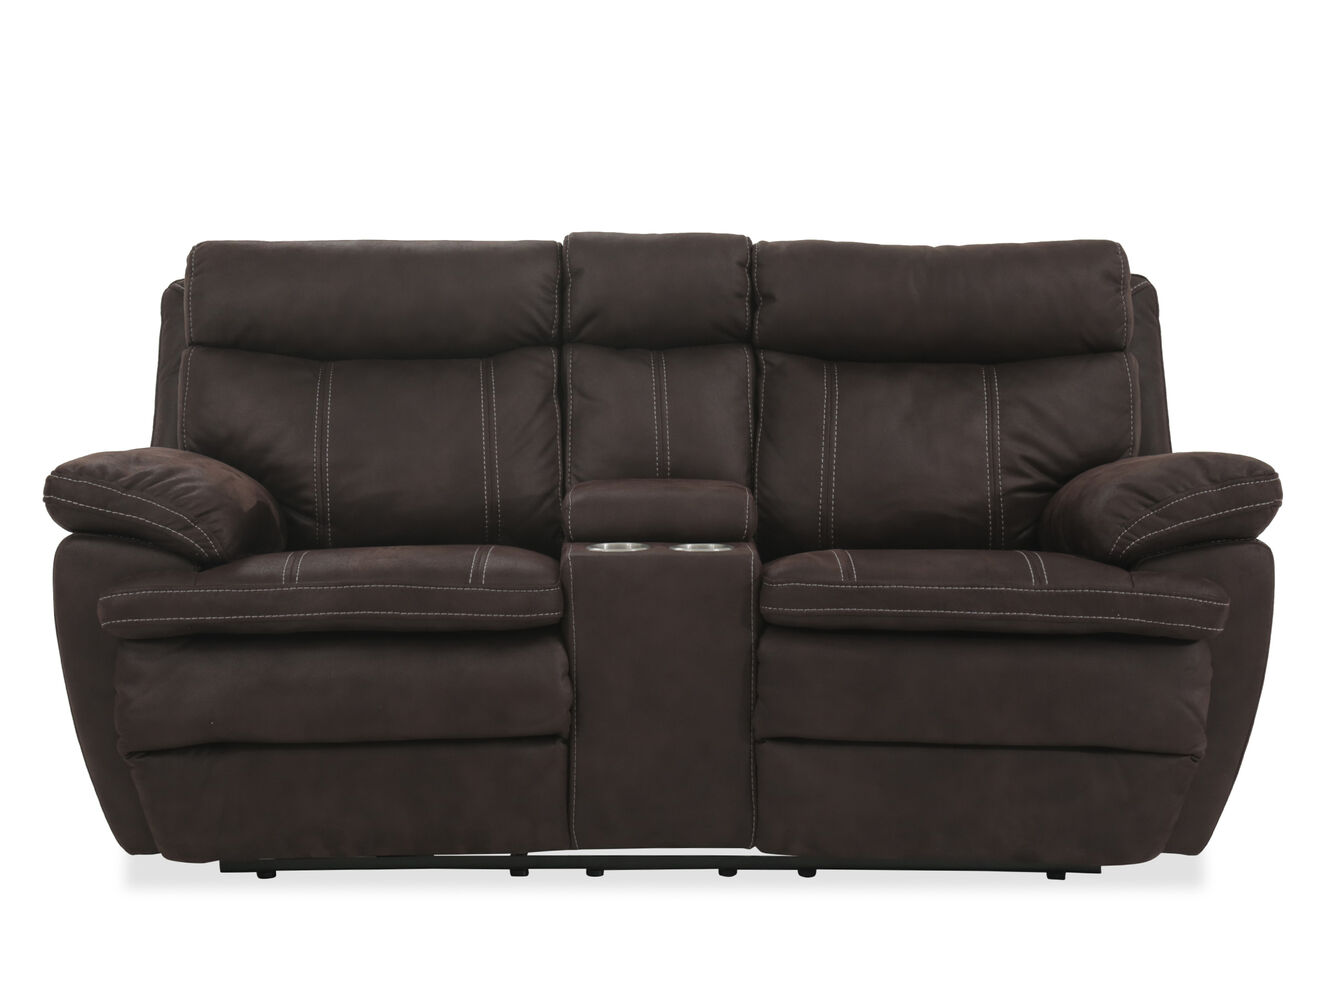 Power Reclining Microfiber 77 Loveseat With Console In Dark Brown Mathis Brothers Furniture